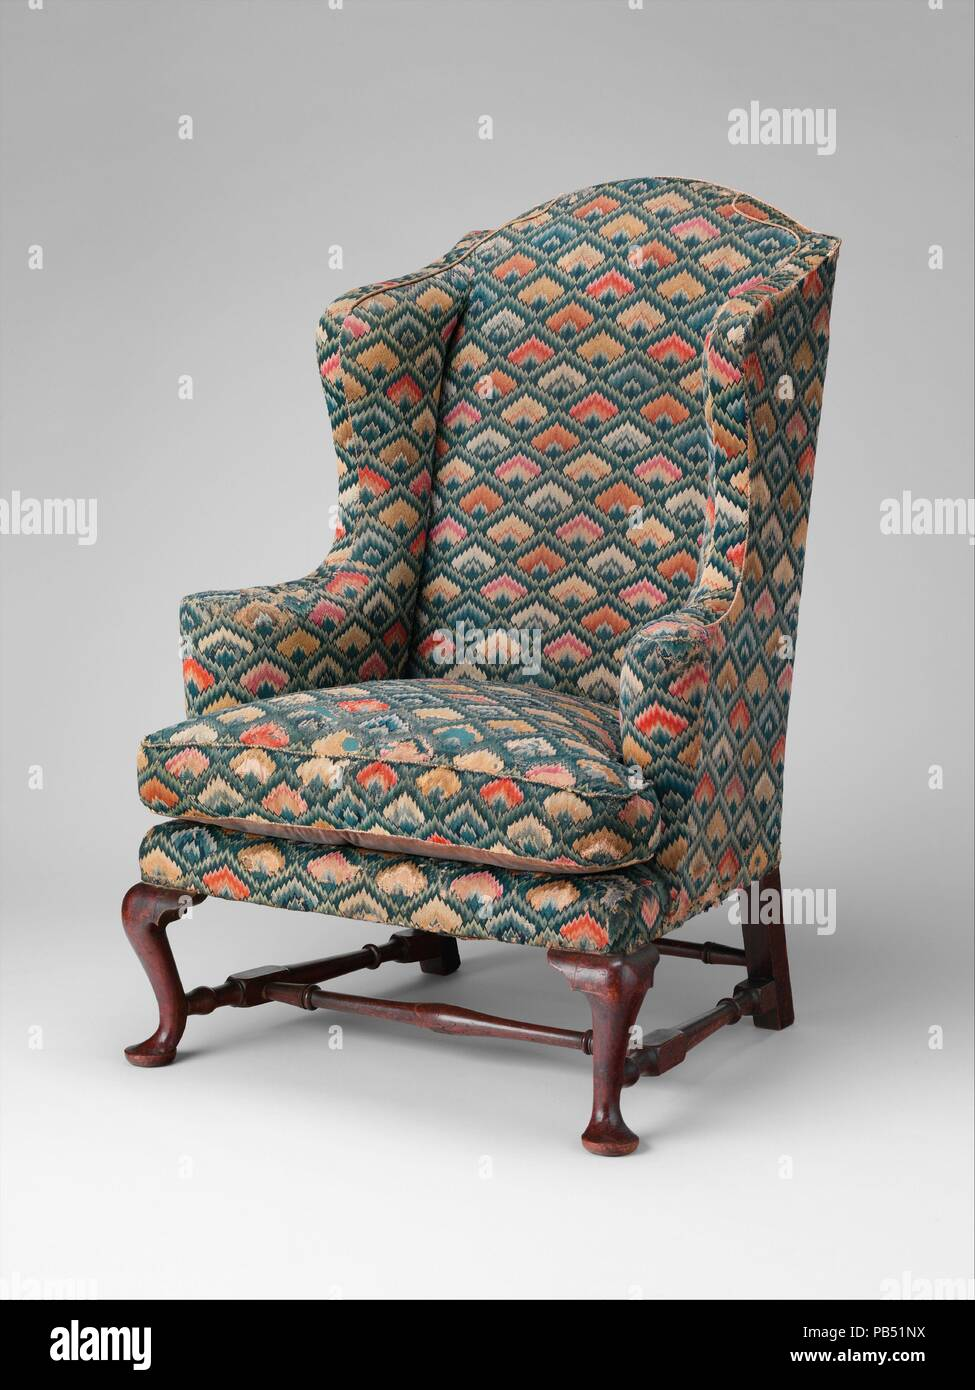 Easy Chair. Culture: American. Dimensions: 46 3/8 x 32 3/8 x 25 7/8 in. (117.8 x 82.2 x 65.7 cm). Maker: Caleb Gardner (died 1761). Date: 1758.  Eighteenth-century easy chairs--heavily  padded, with thick down-filled cushions, and with wings to rest one's head against and keep drafts away--were often reserved for the elderly or the infirm. This New England example is remarkable for its elaborate upholstery and intact condition. The front is covered with Irish stitch needlework and the back with a needlework landscape scene. The seams are covered with silk tape. The frame is inscribed ' Made by - Stock Image